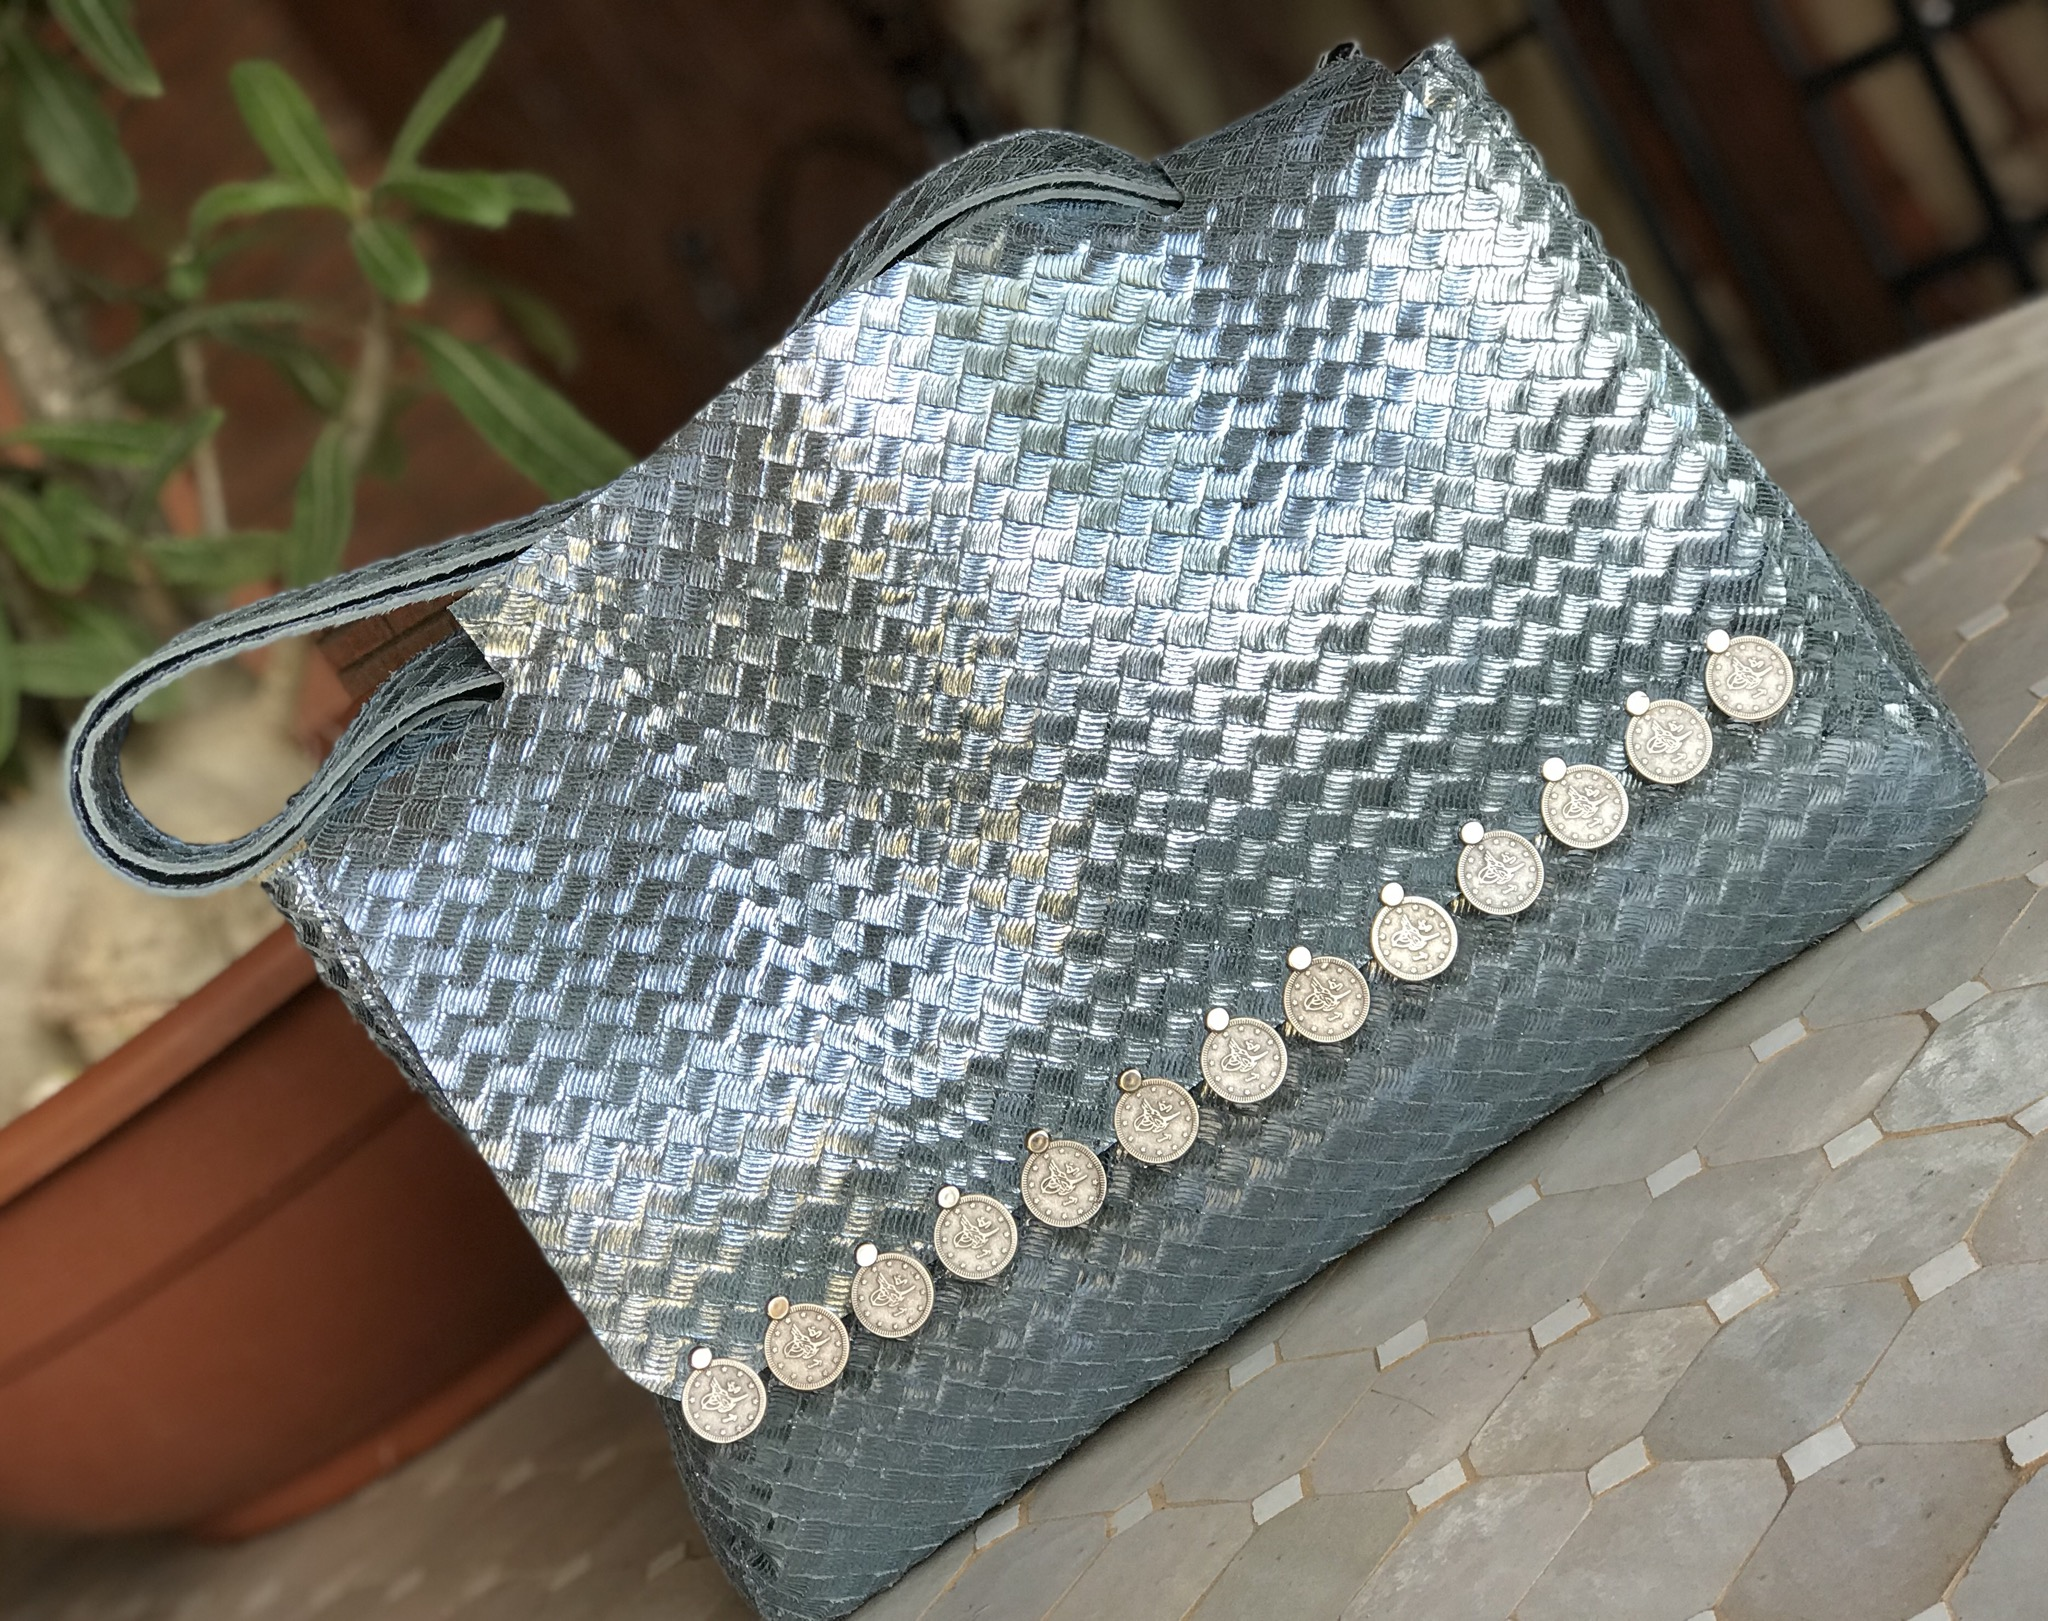 Bag leather tresse metallic light blue big size with coins